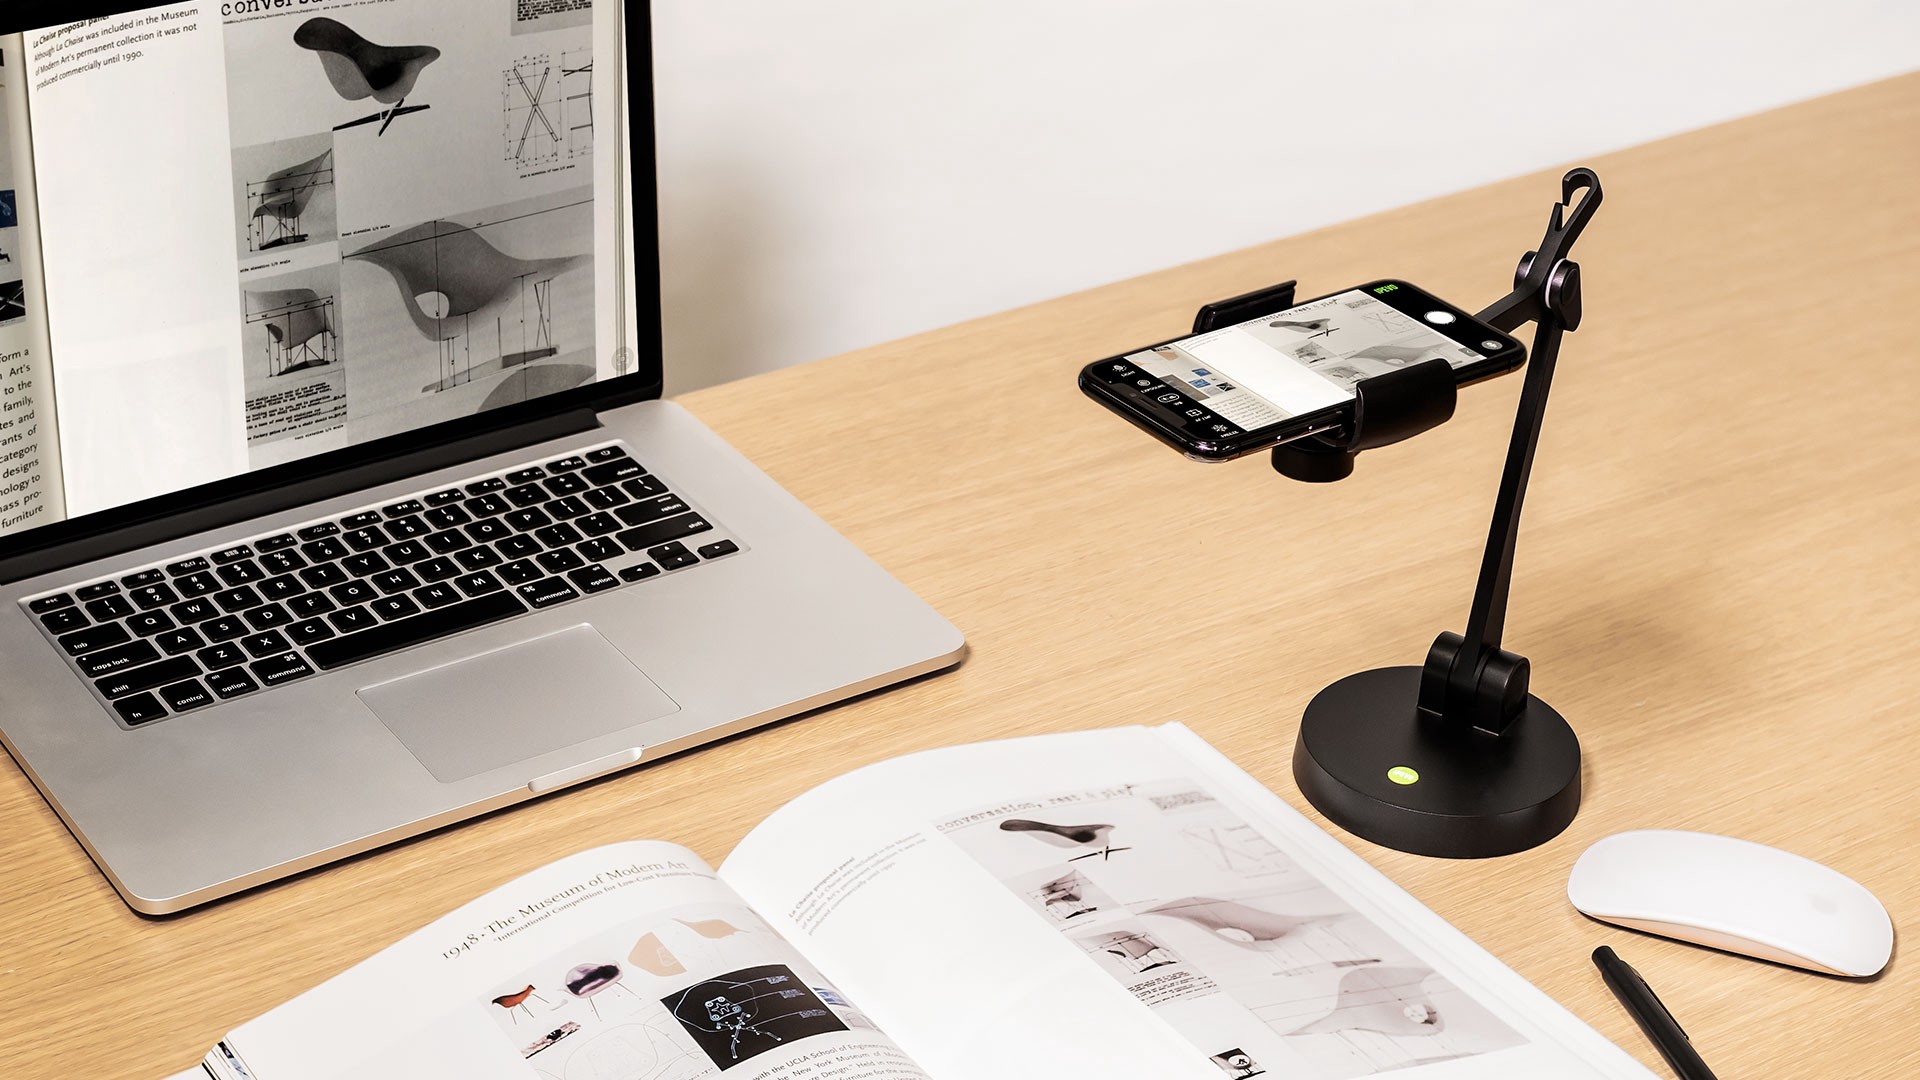 How to turn your smartphone into a document camera with the new IPEVO Uplift